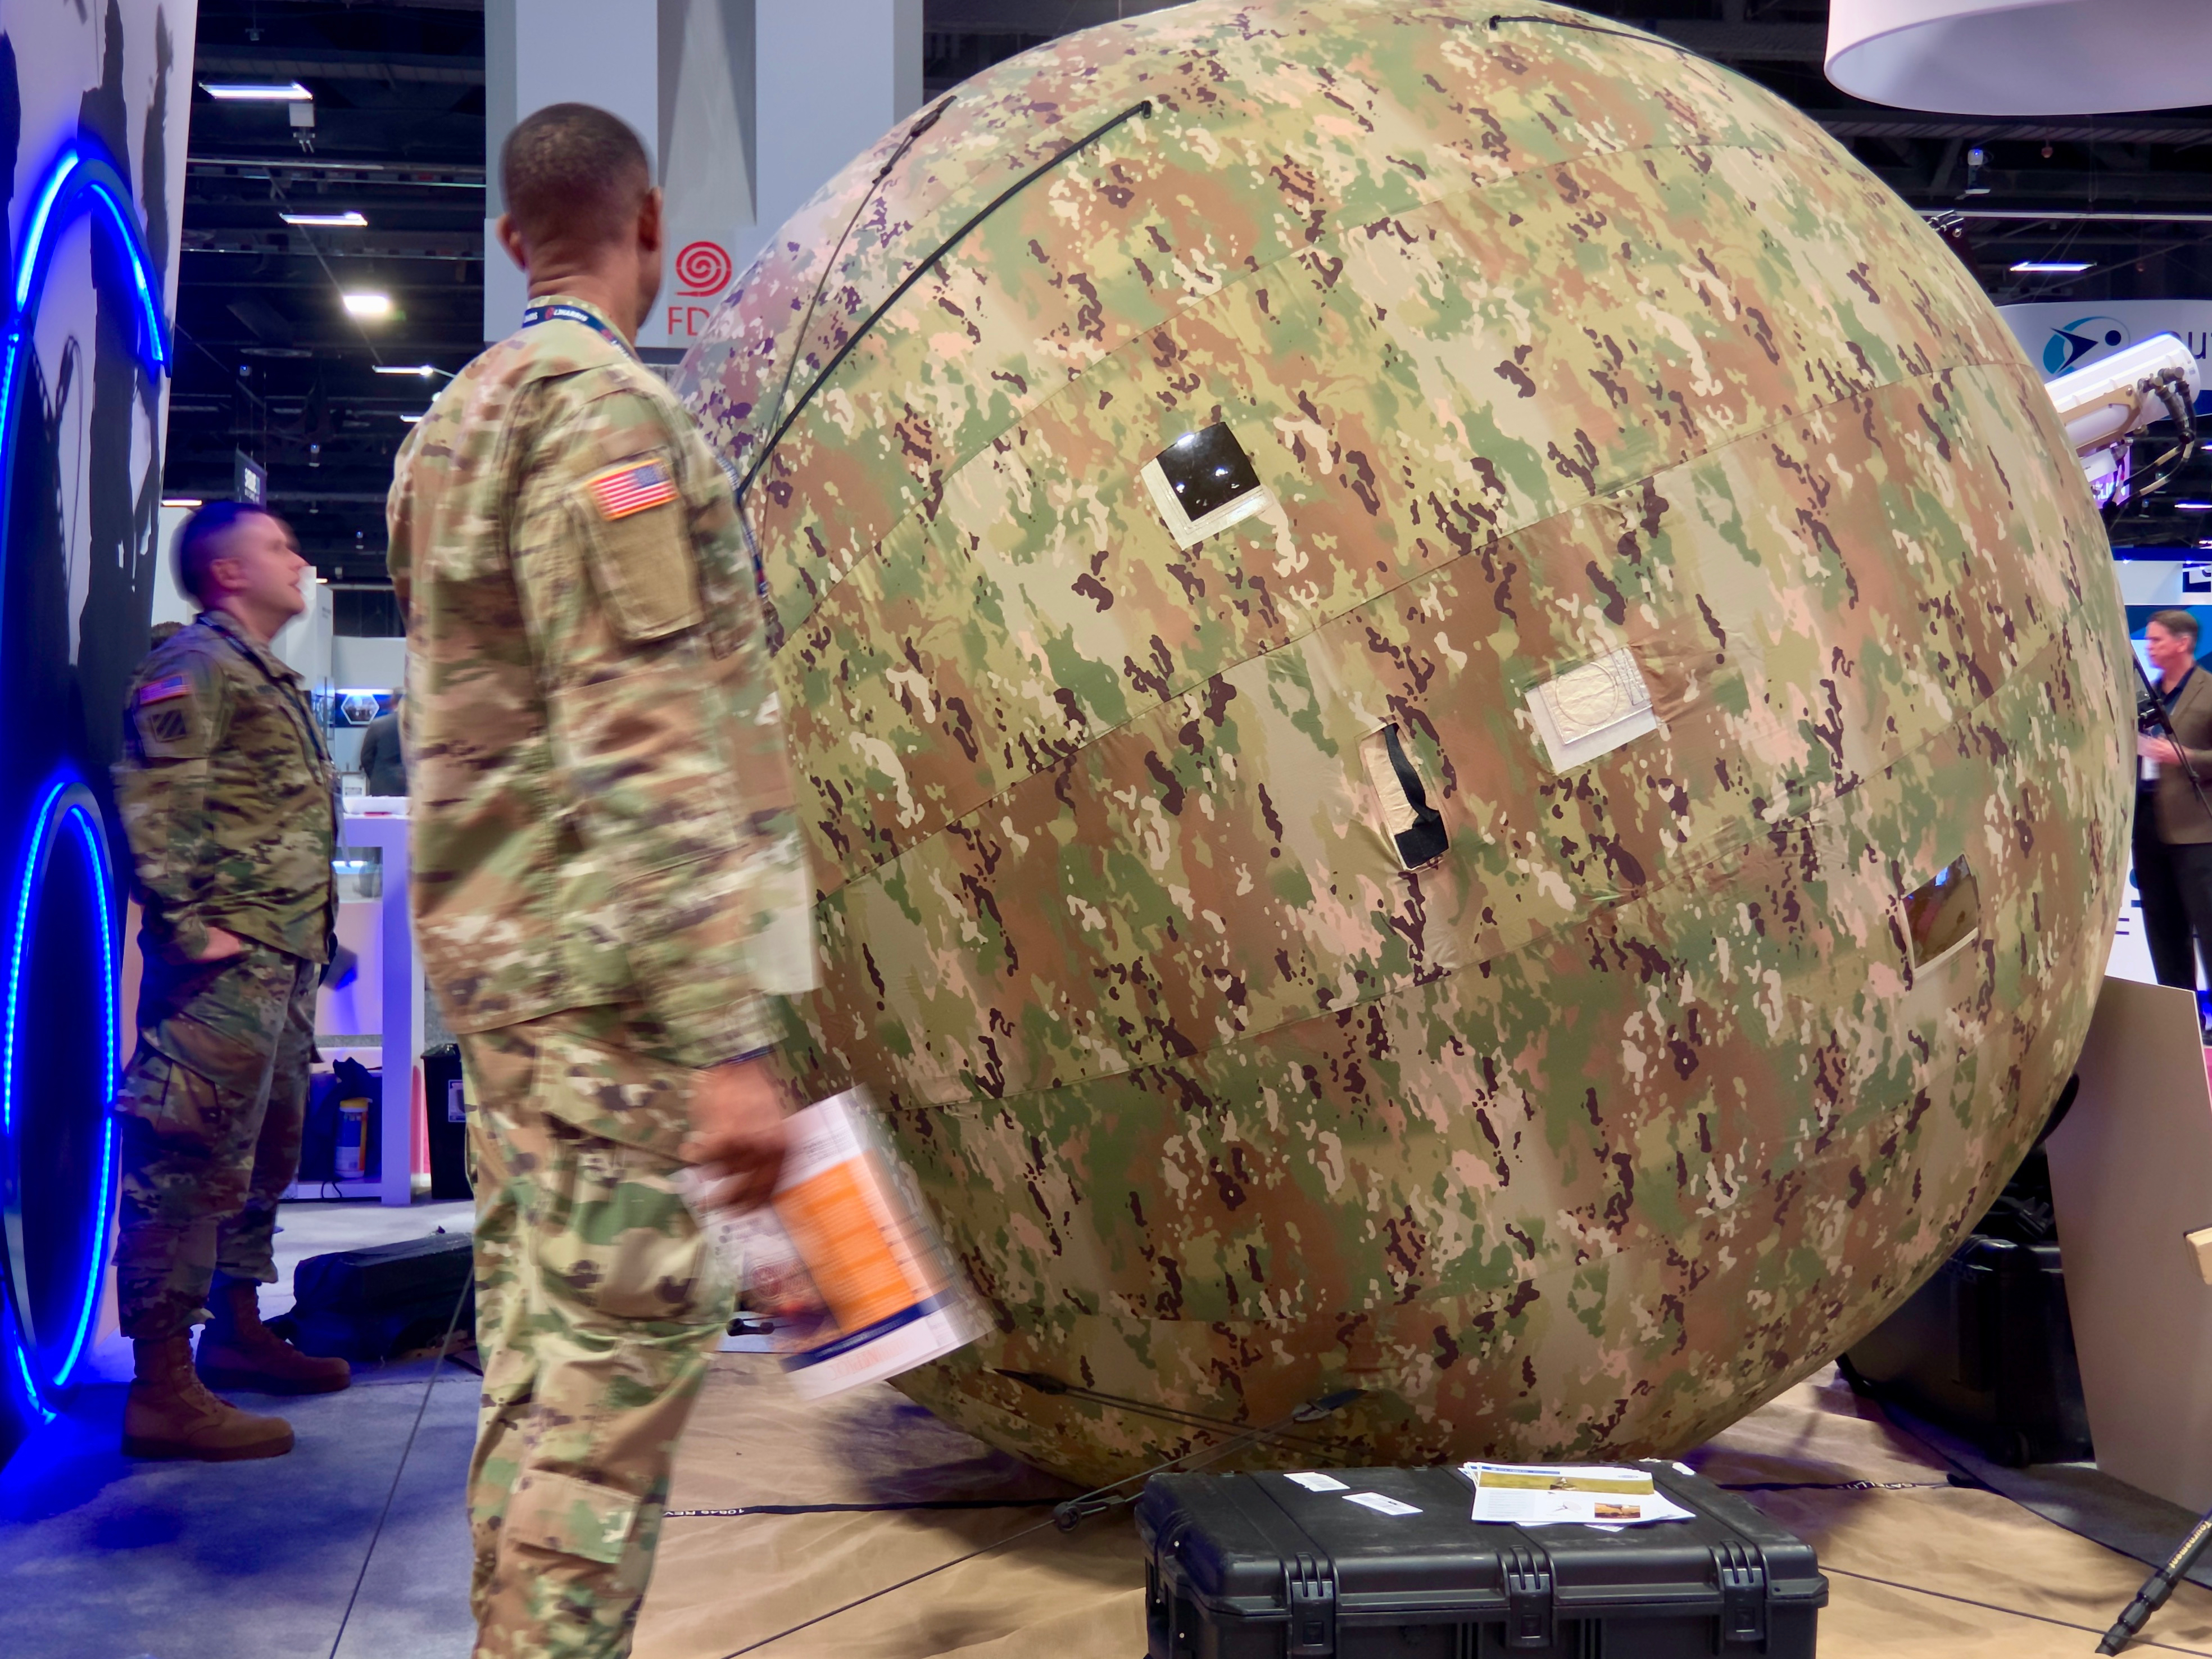 A company called Cubic showed off inflatable satellite antennas that the military uses for quickly setting up network communications with a satellite in remote areas.